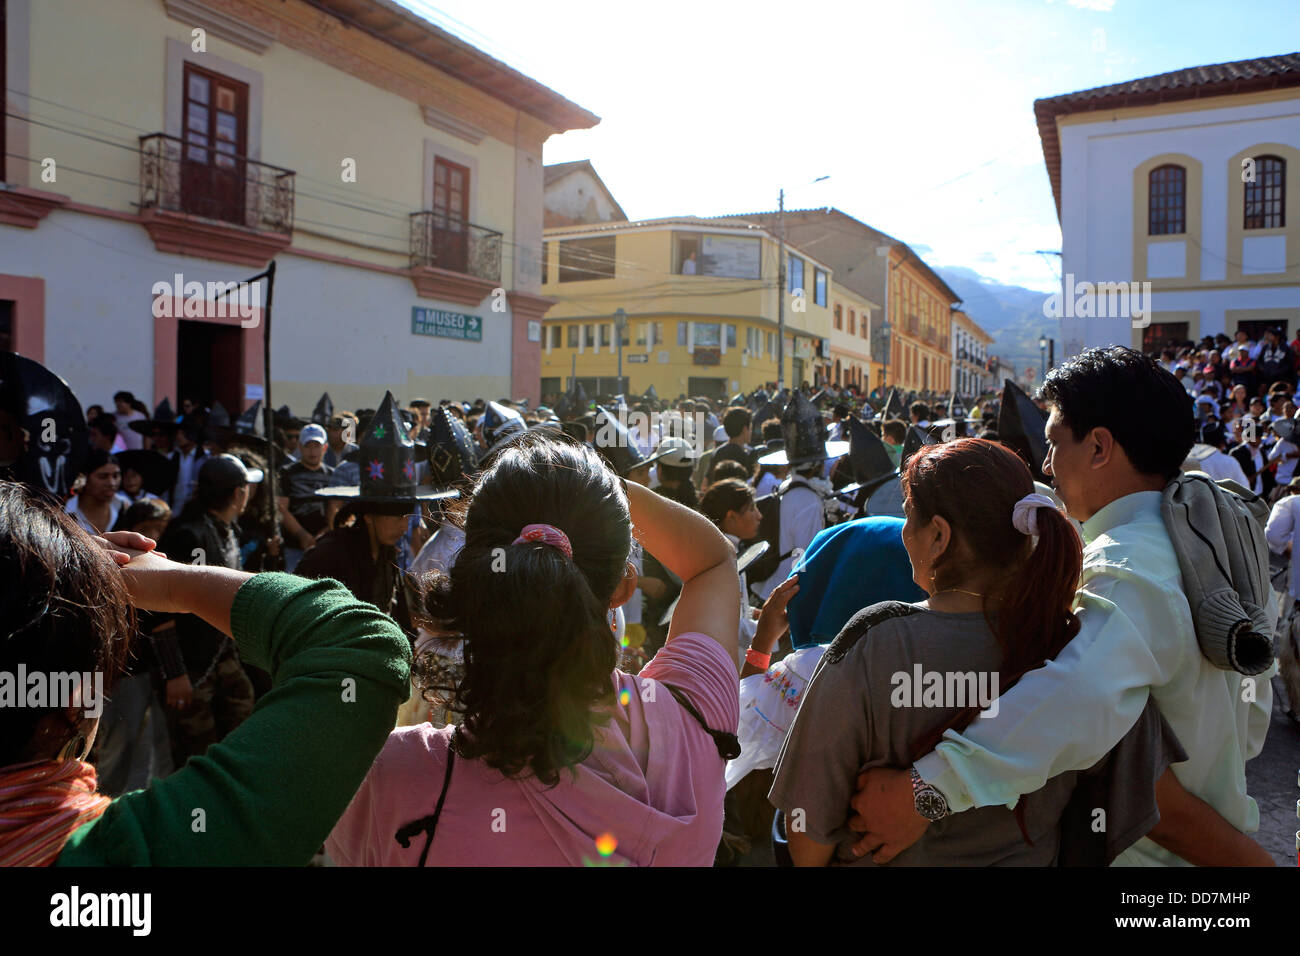 Large crowd in Cotacachi town square during Inti Raymi summer solstice celebrations Stock Photo